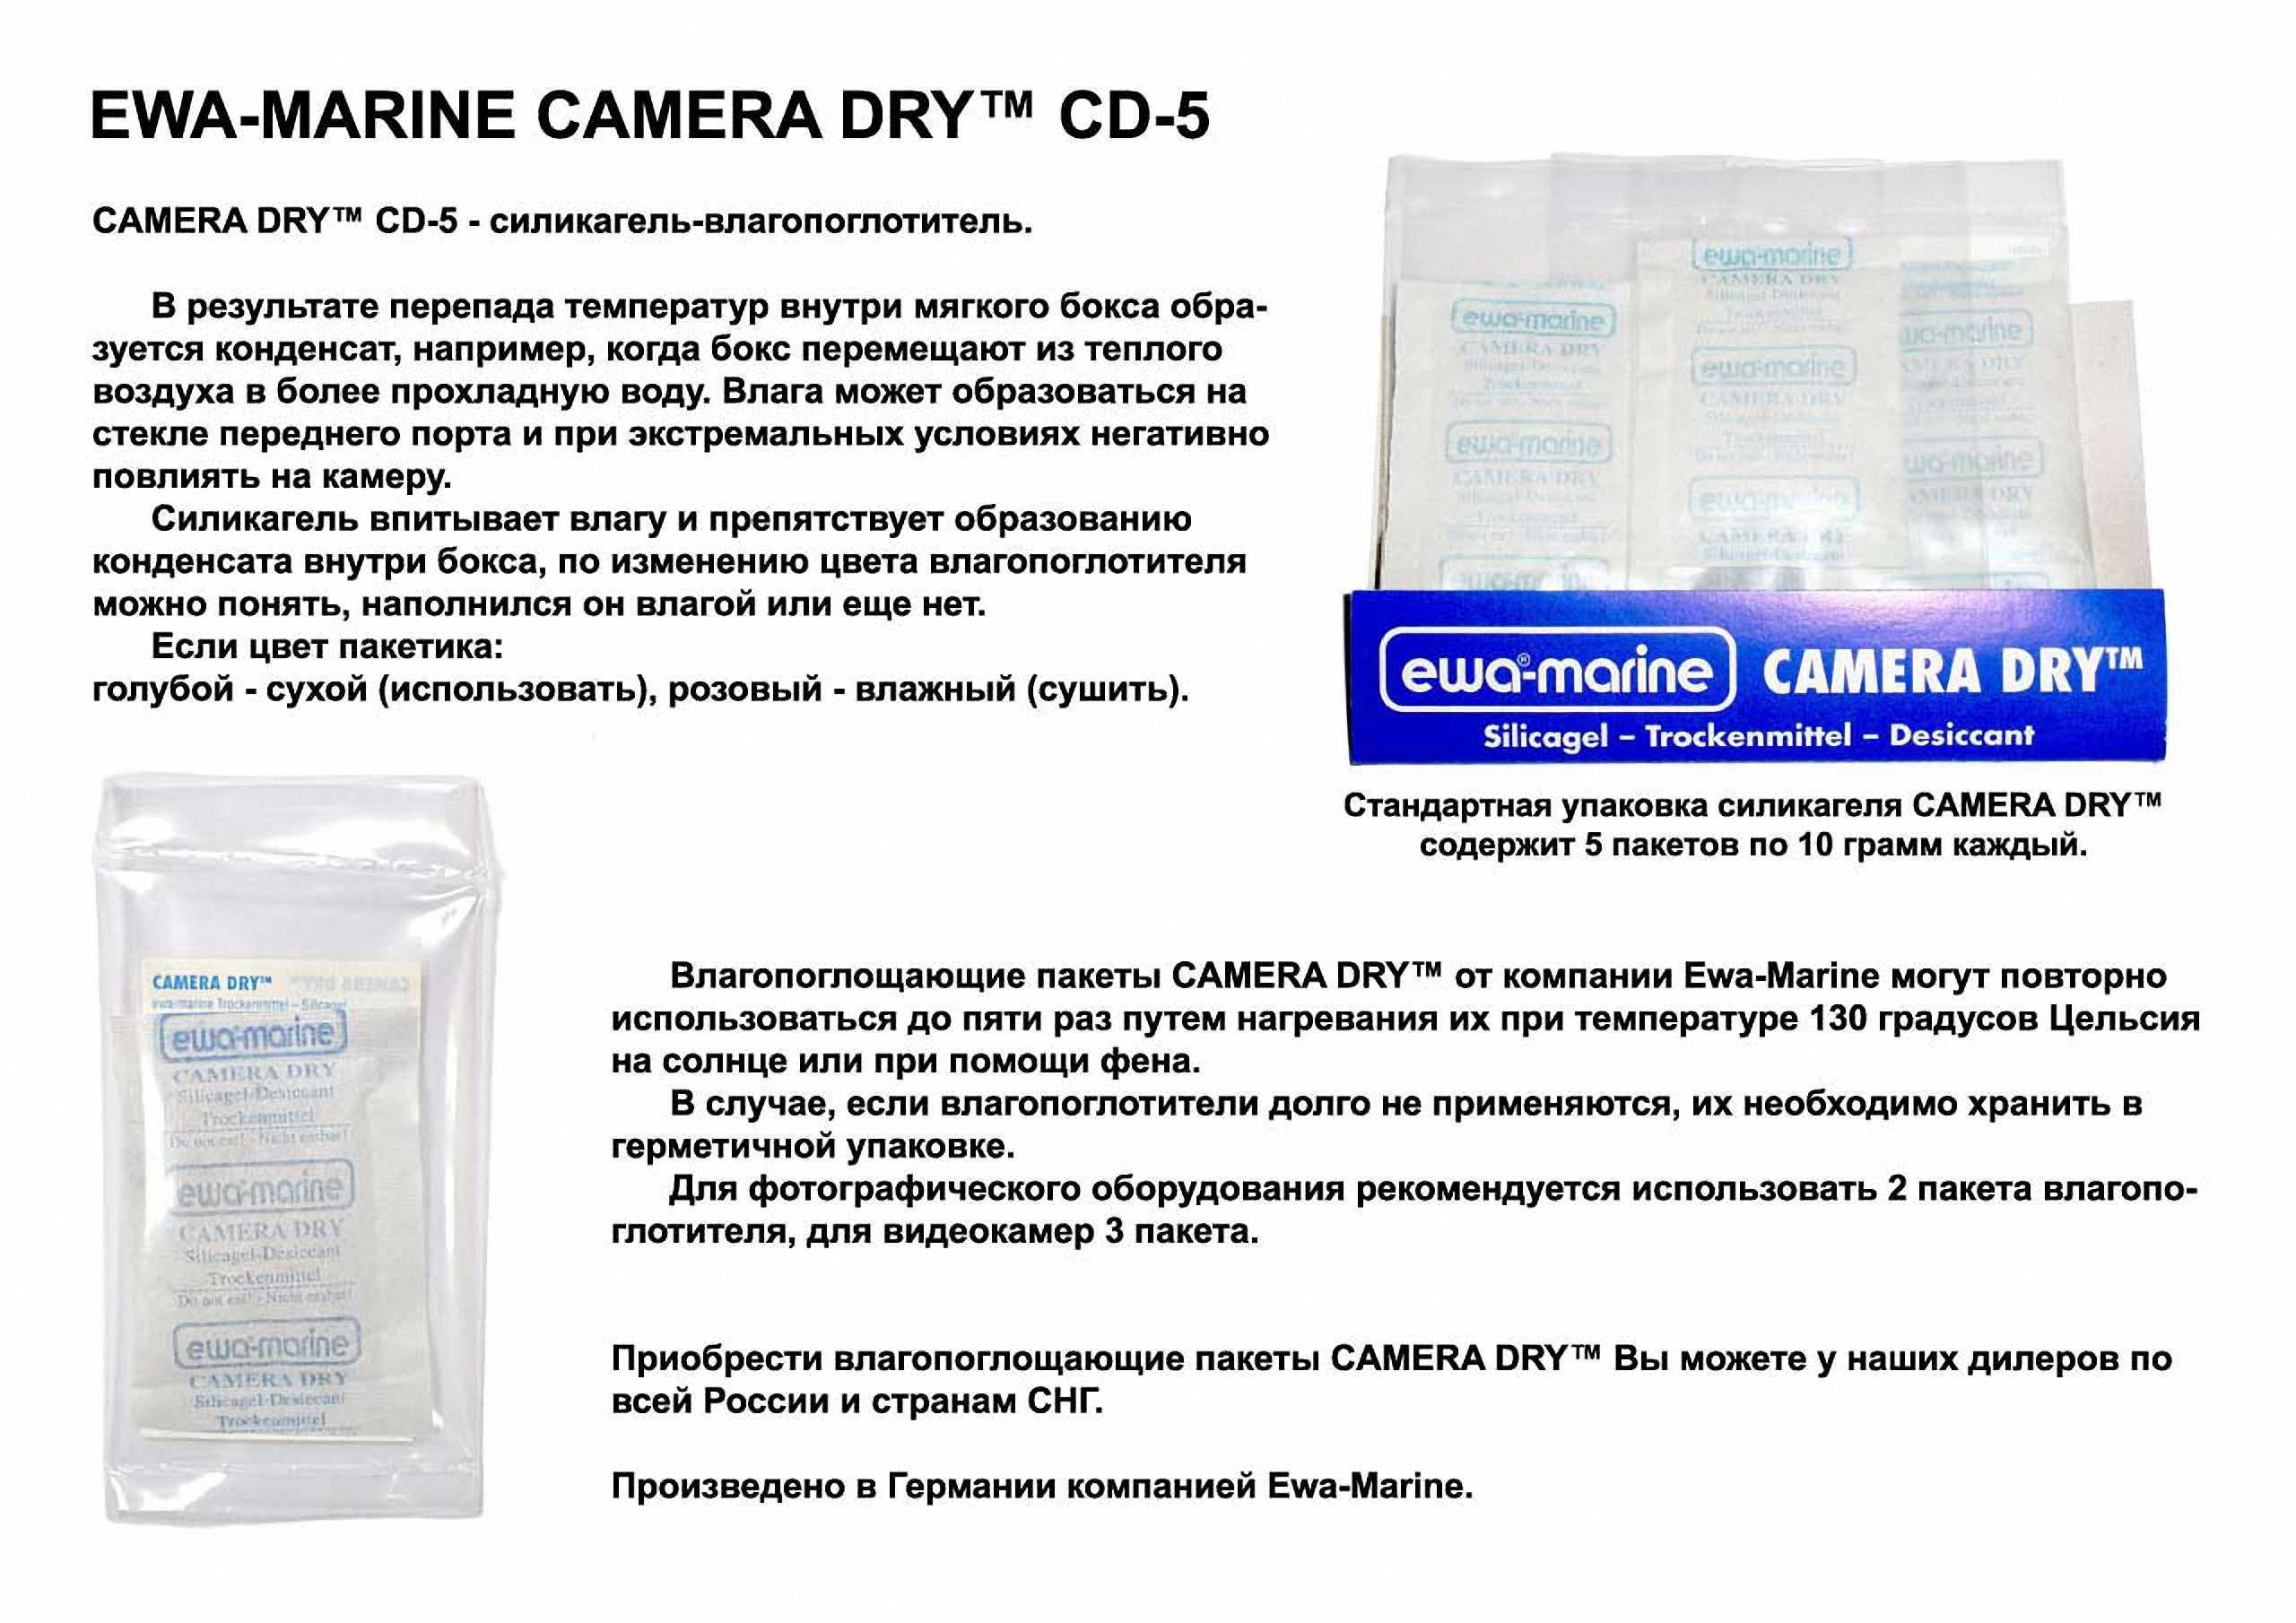 Силикагель Ewa-Marine Camera DRY CD-5. Фото 1